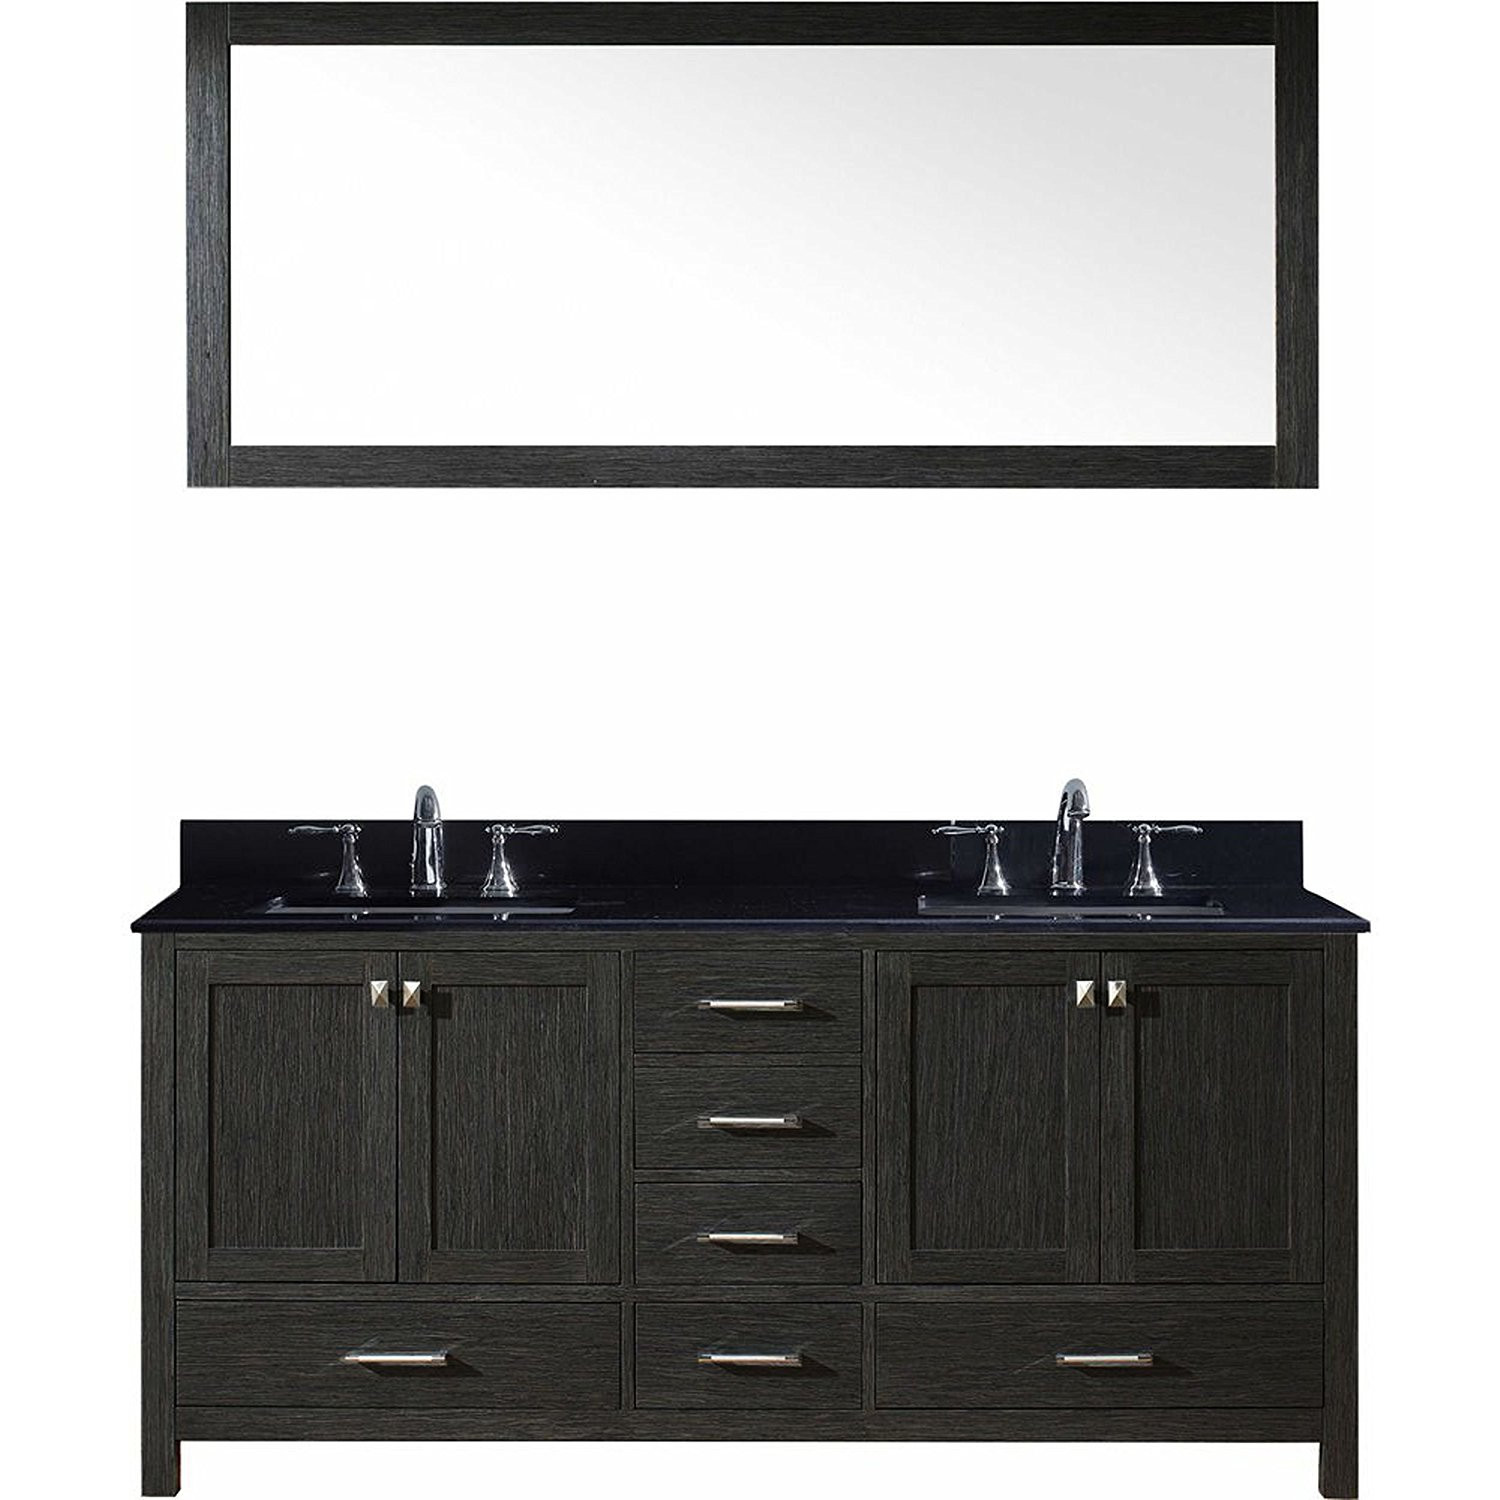 Virtu KD-60072-BGSQ-ZG Caroline Premium 72 Inch Double Bathroom Vanity Set In Zebra Grey